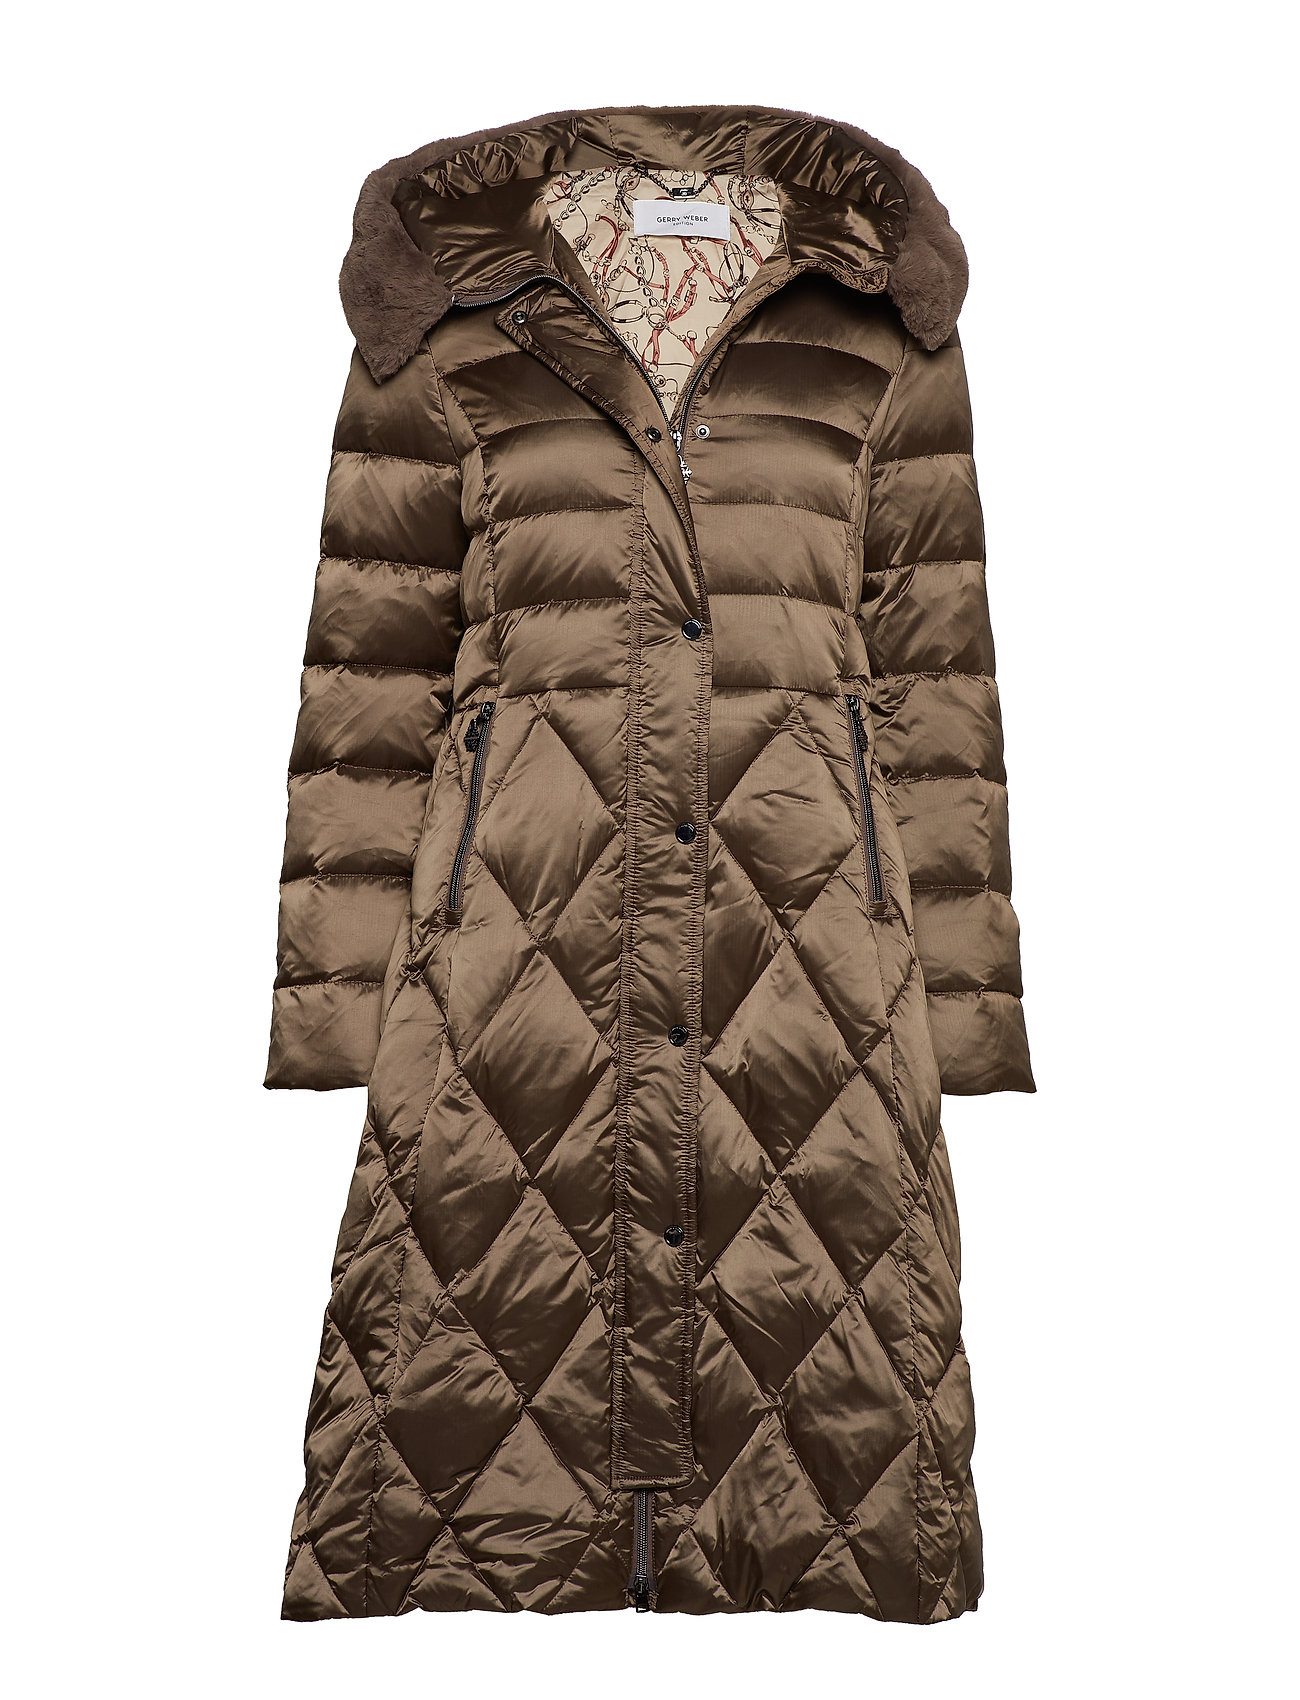 Gerry Weber Edition COAT NOT WOOL - DARK TAUPE